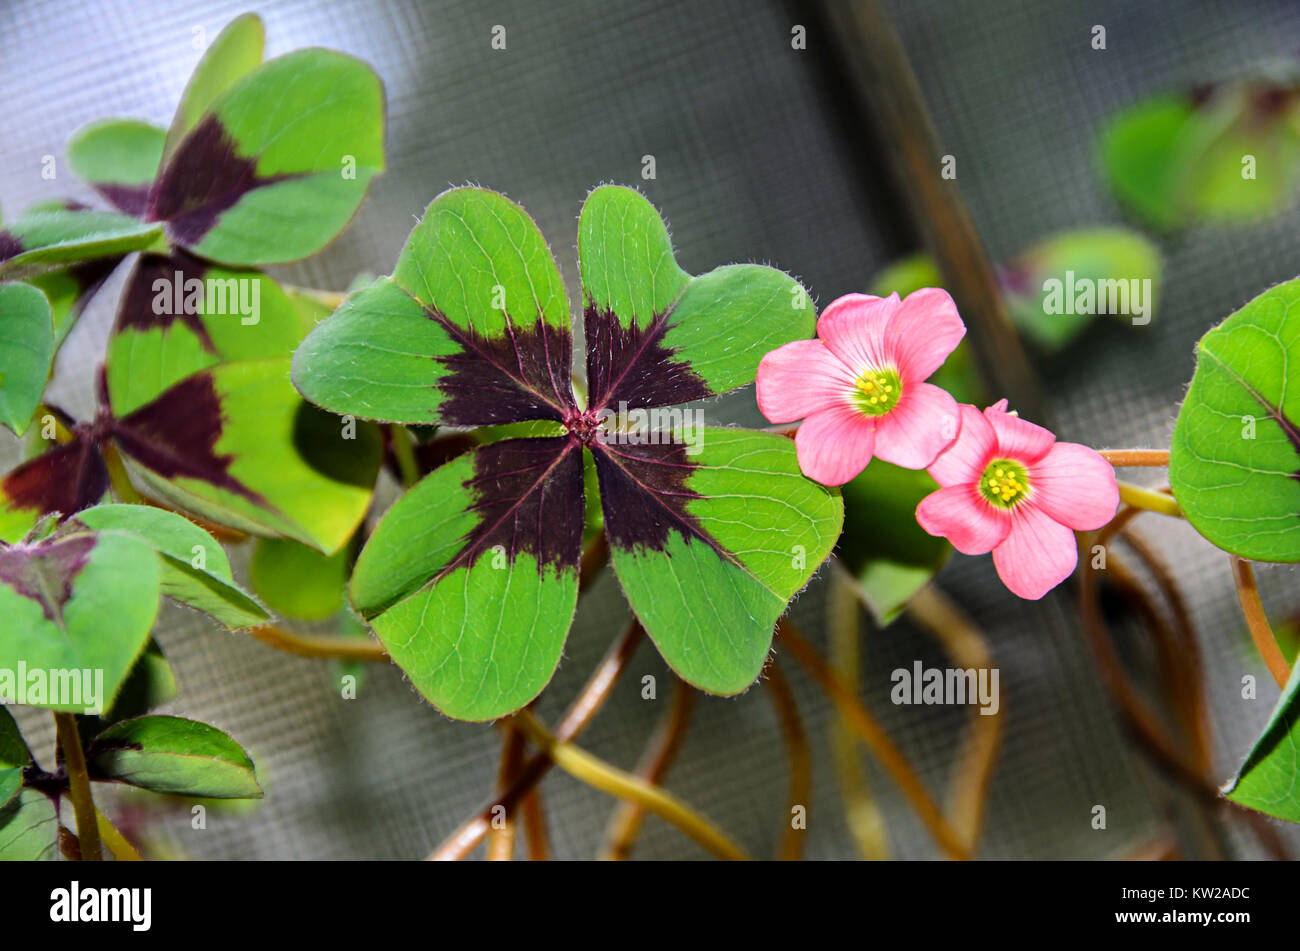 Pink four leaves clover flowers green leafs trefoil lucky symbol pink four leaves clover flowers green leafs trefoil lucky symbol stock photo 170311832 alamy mightylinksfo